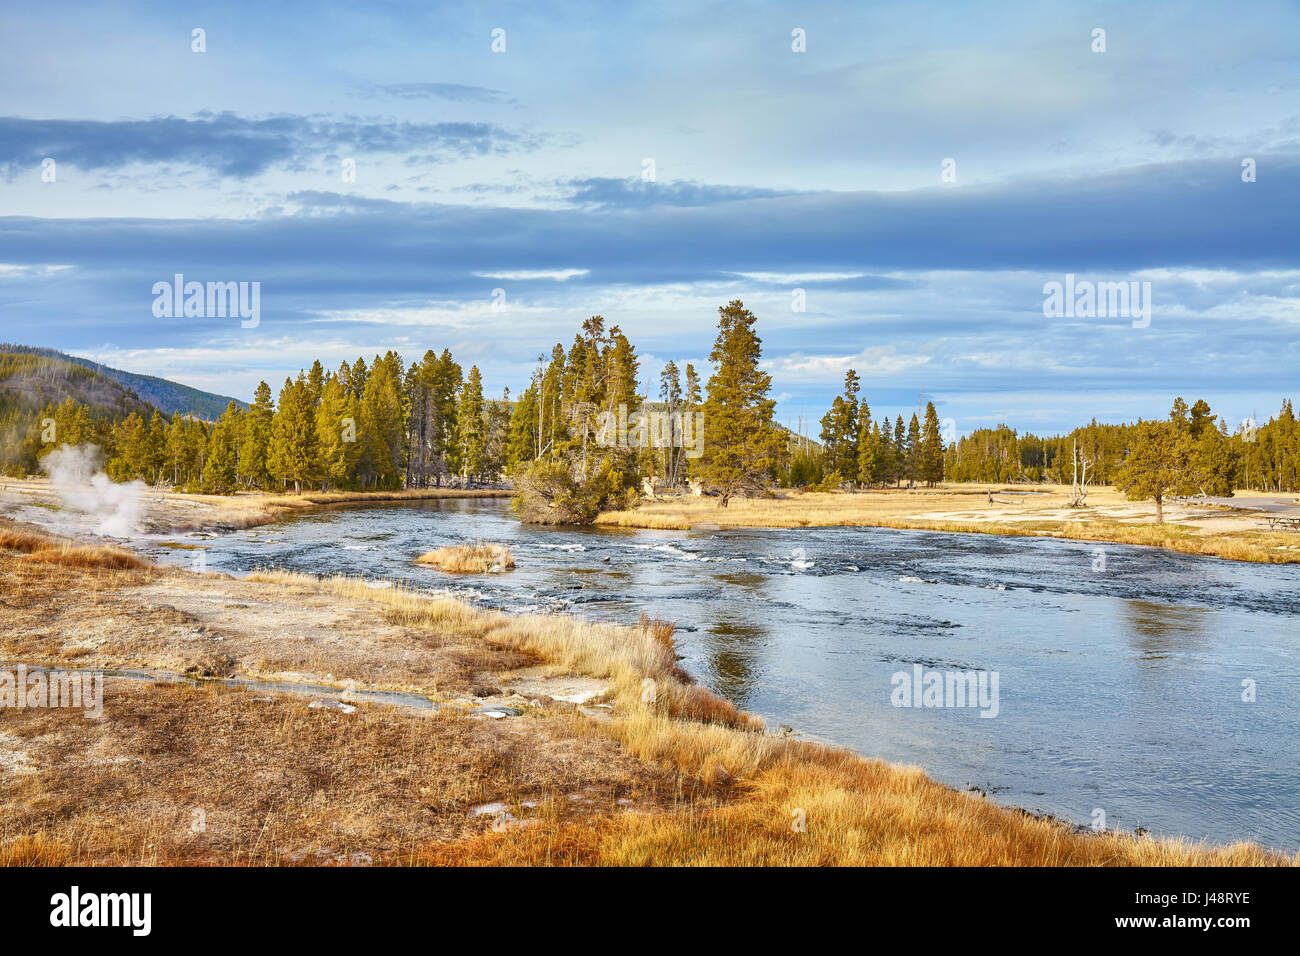 Autumn landscape in Yellowstone National Park, Wyoming, USA. - Stock Image